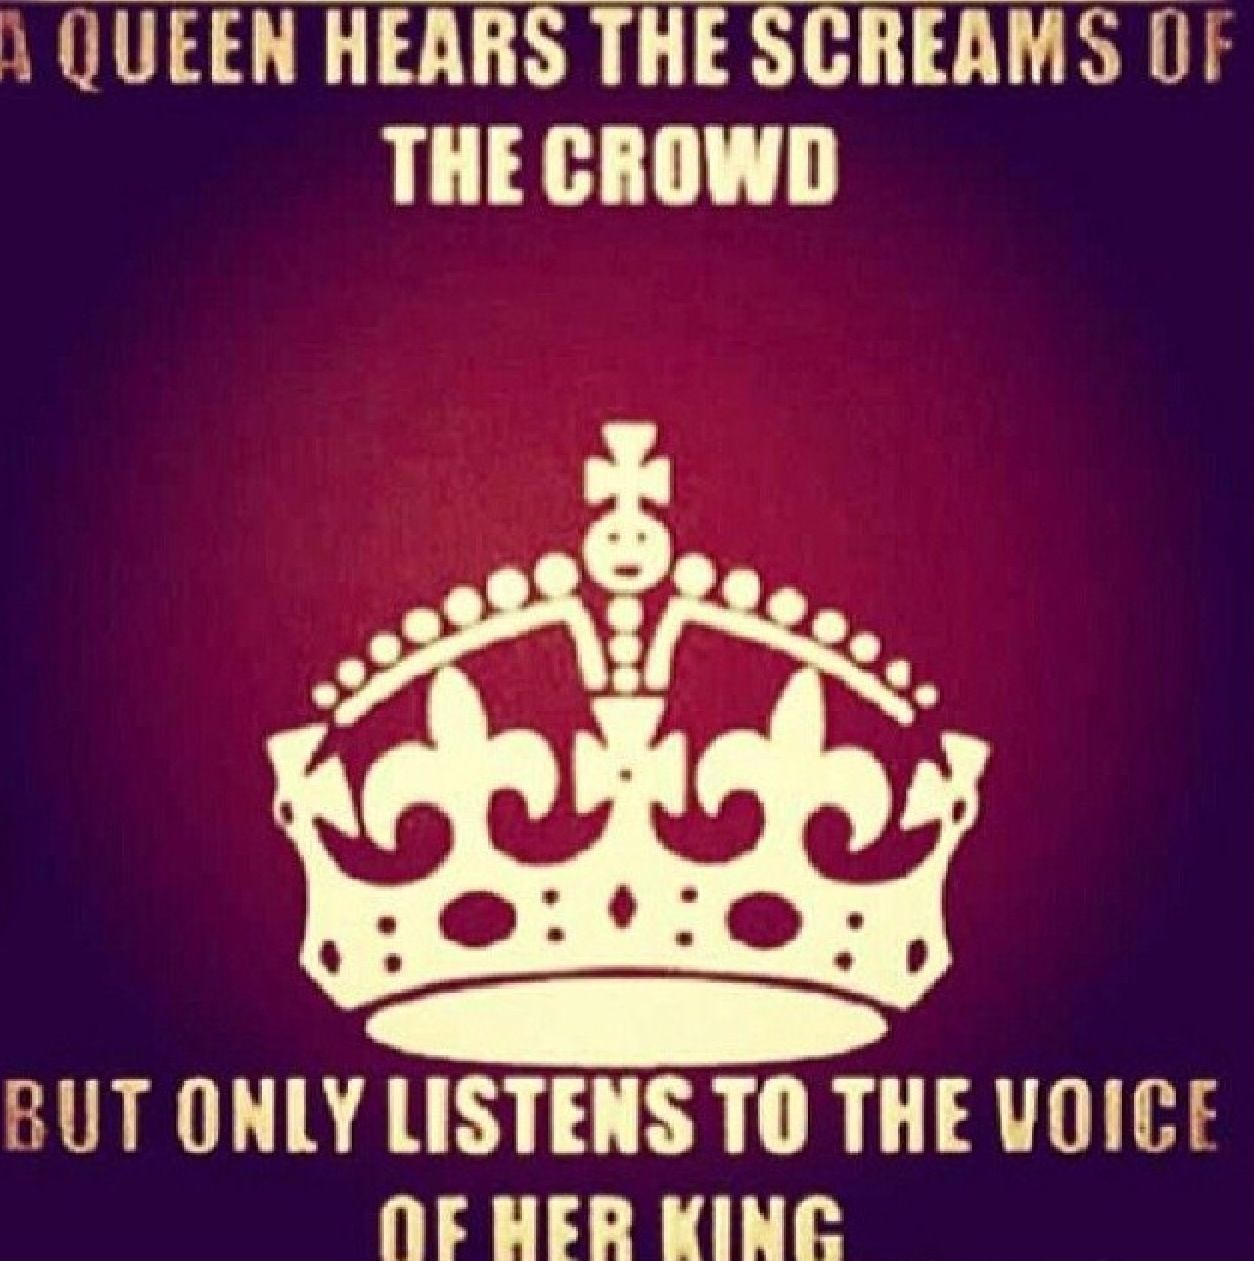 King And Queen Love Quotes A Queen Hears The Screams Of The Crowd But Only Listens To The